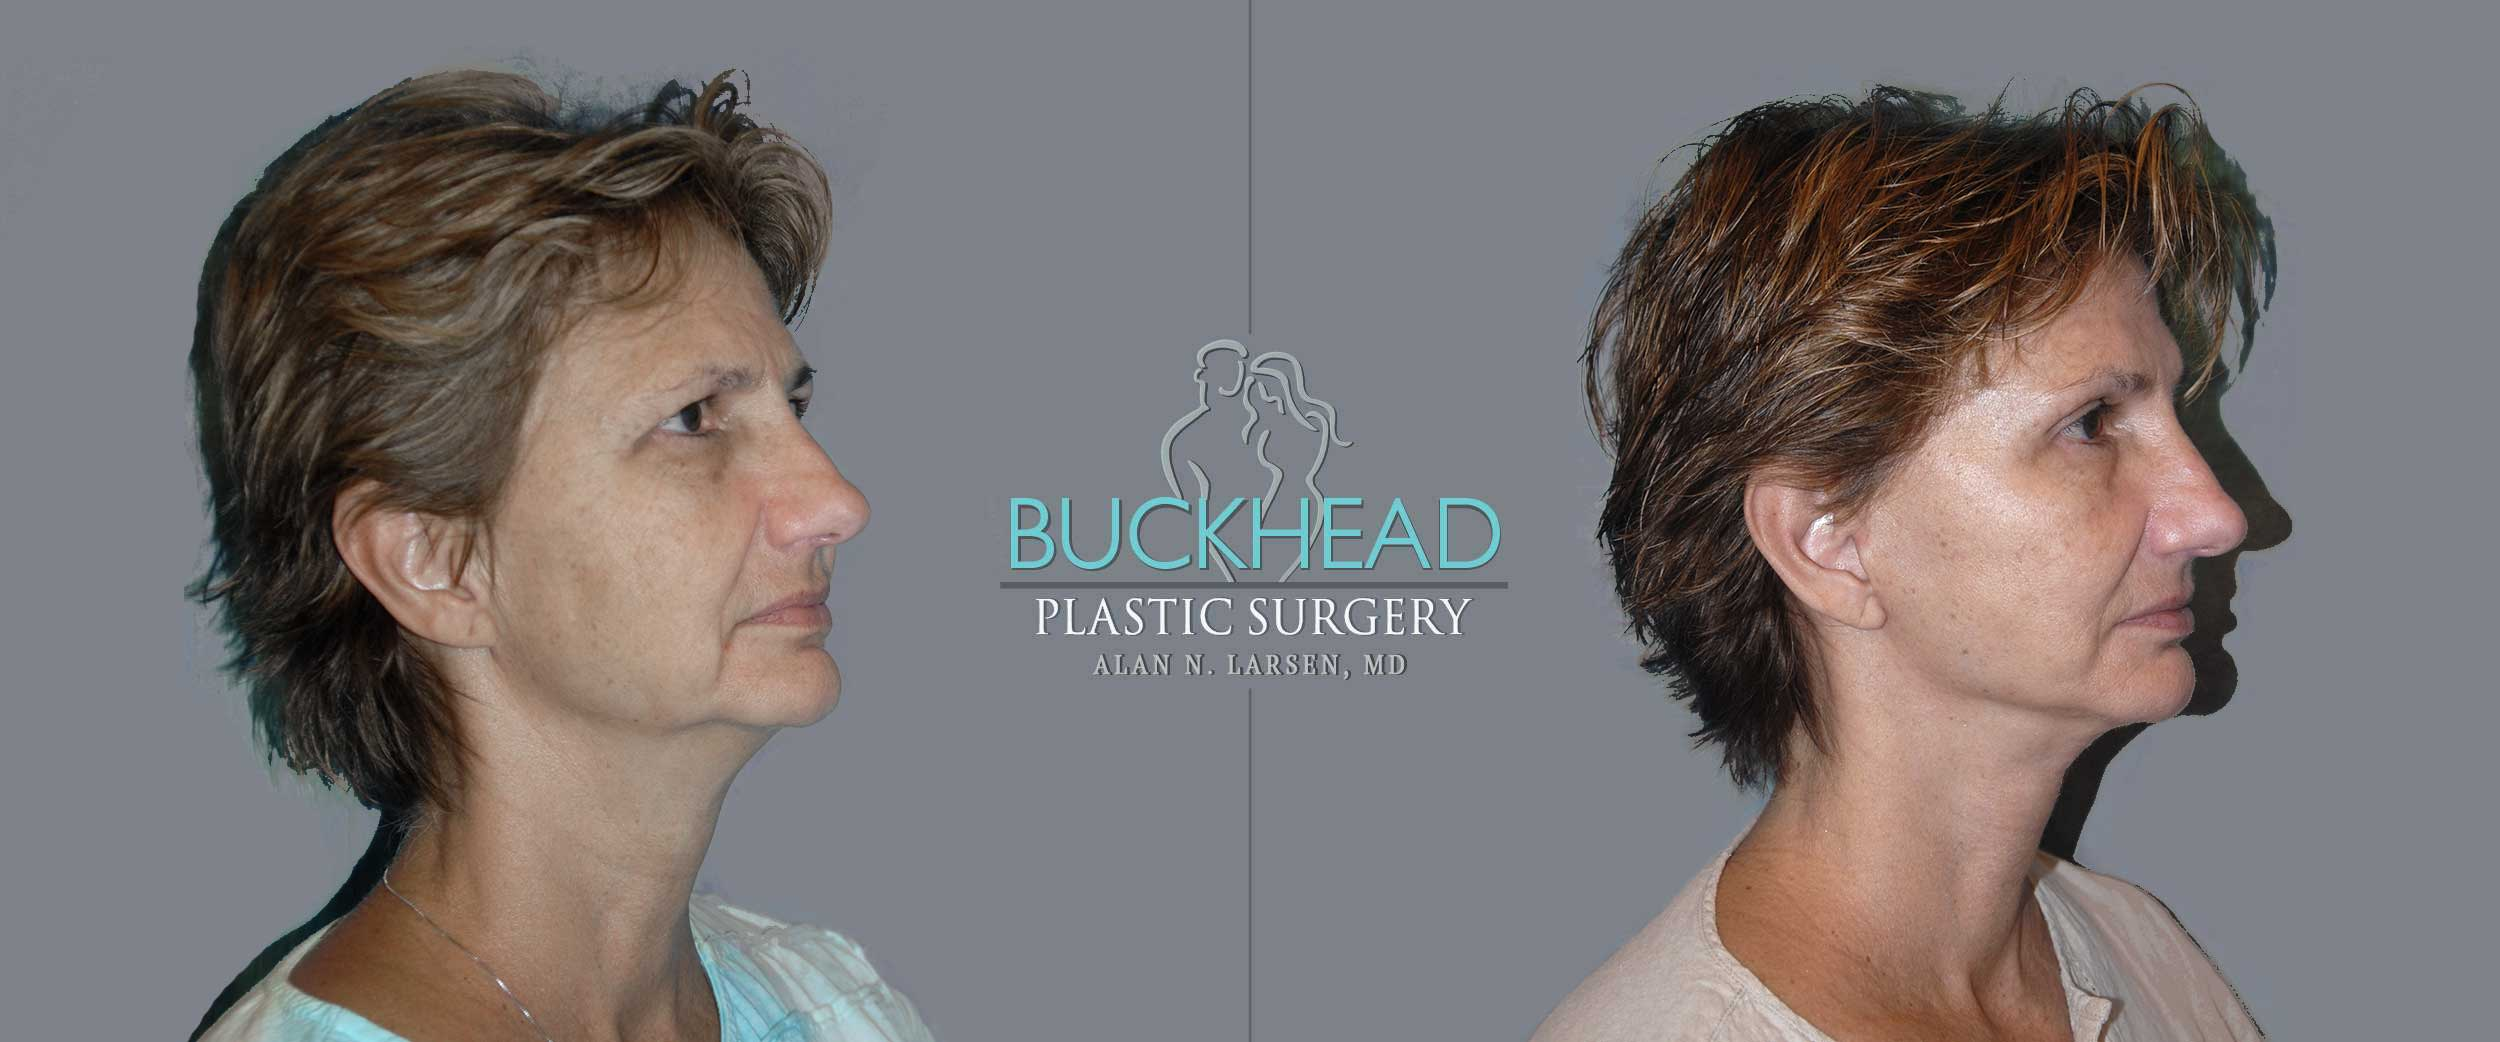 Before and After Photo Gallery | Mini Facelift | Buckhead Plastic Surgery | Alan N. Larsen, MD | Board-Certified Plastic Surgeon | Atlanta GA